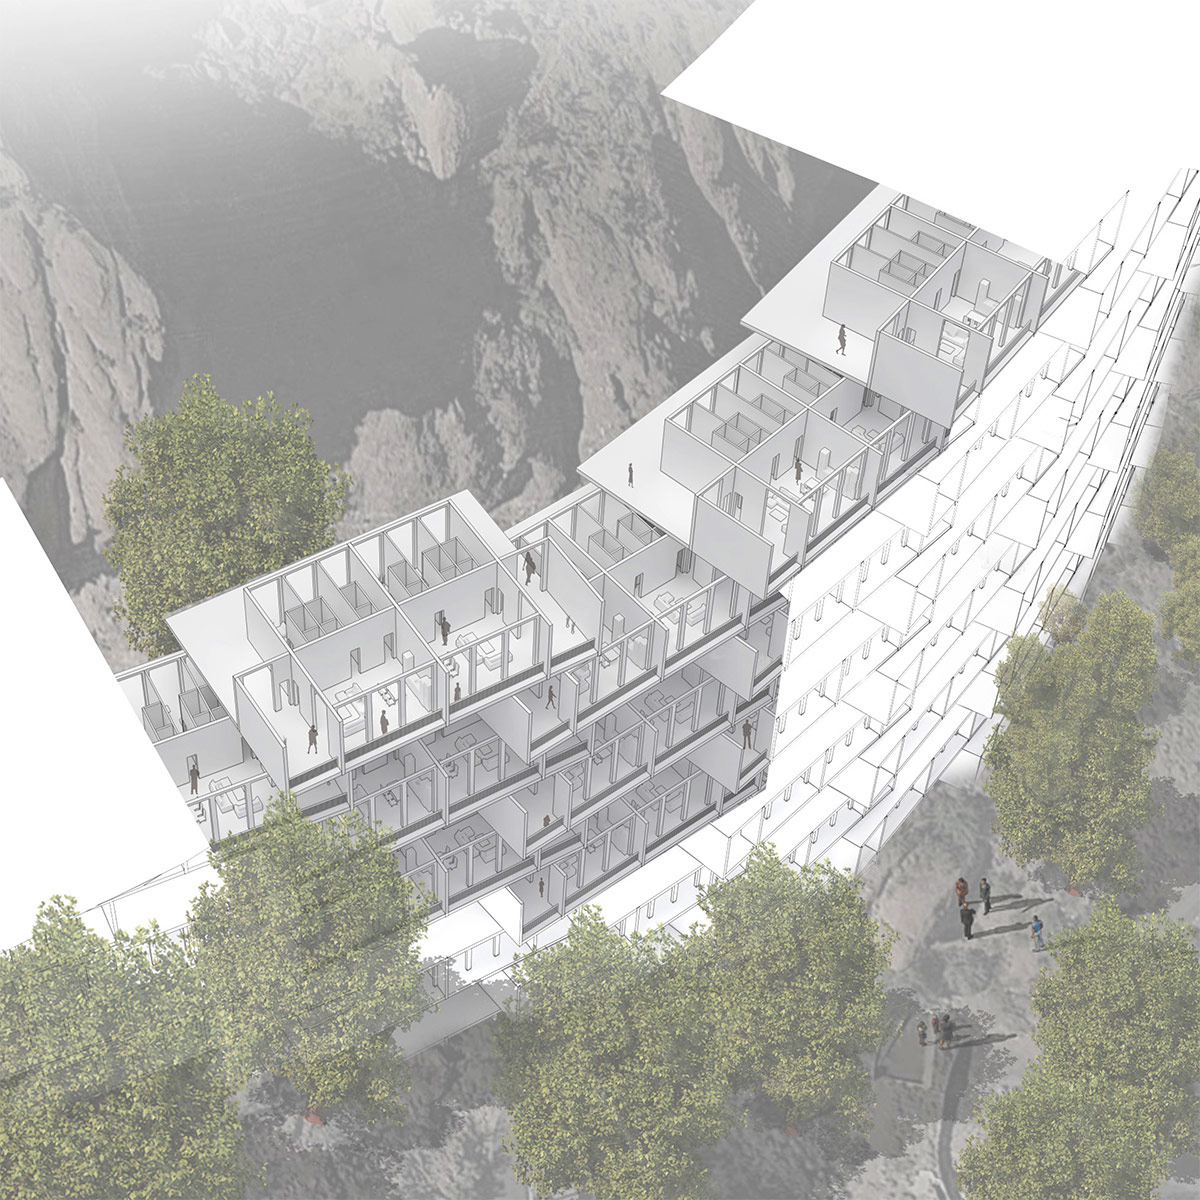 Aerial perspective showing the layouts of stacked housing units along Camelback Mountain by student Donglei Cao